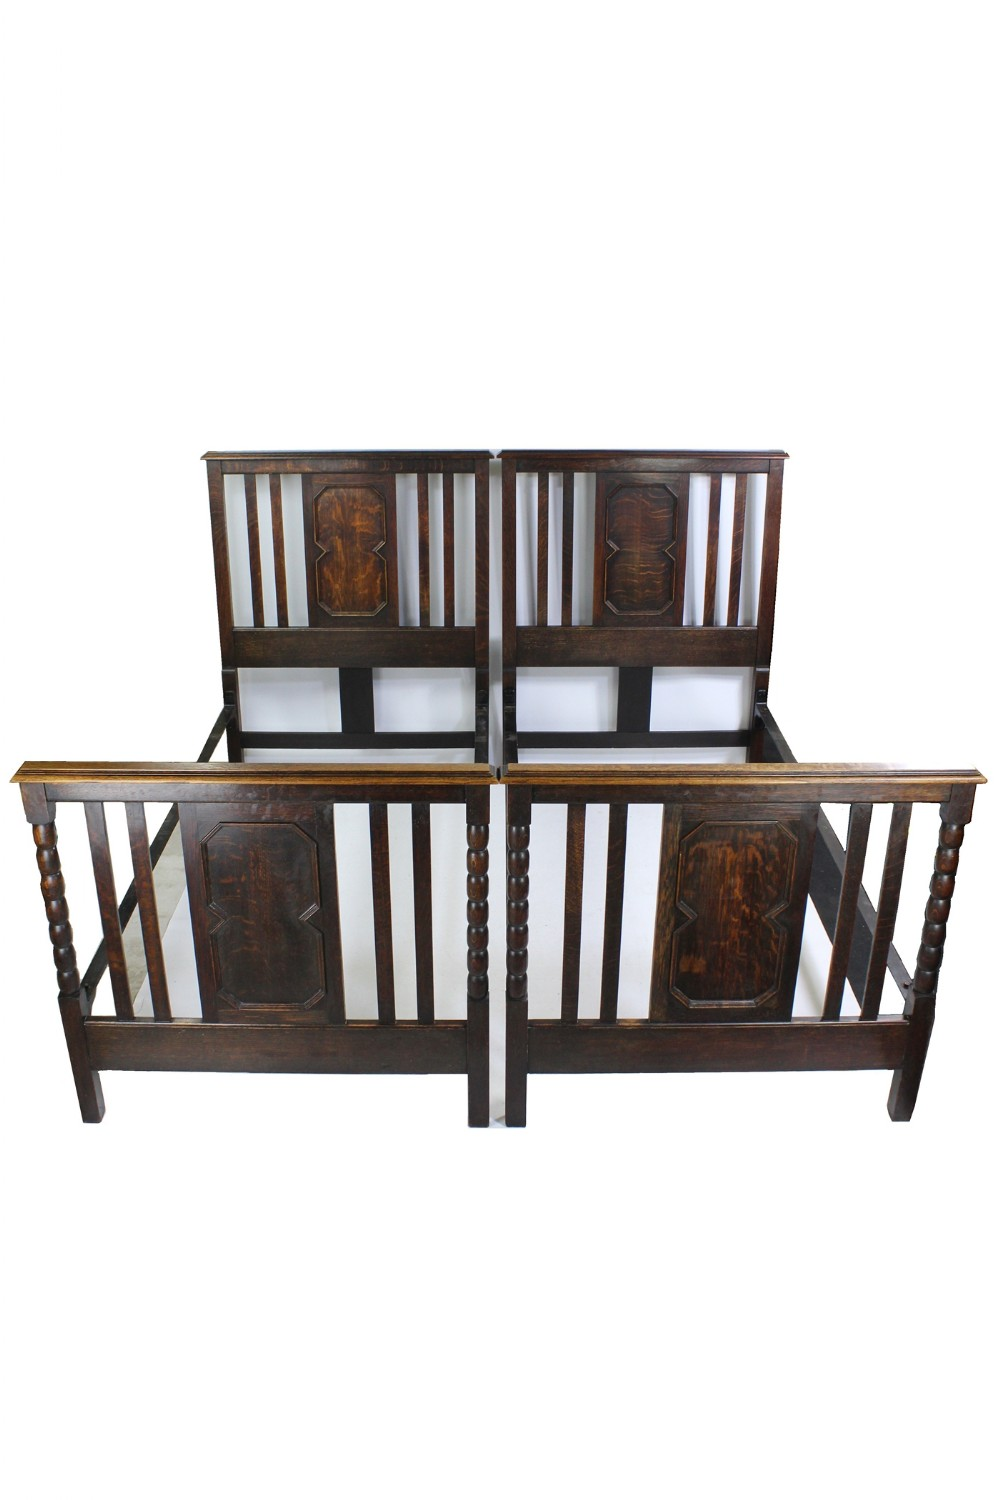 pair of antique edwardian oak single